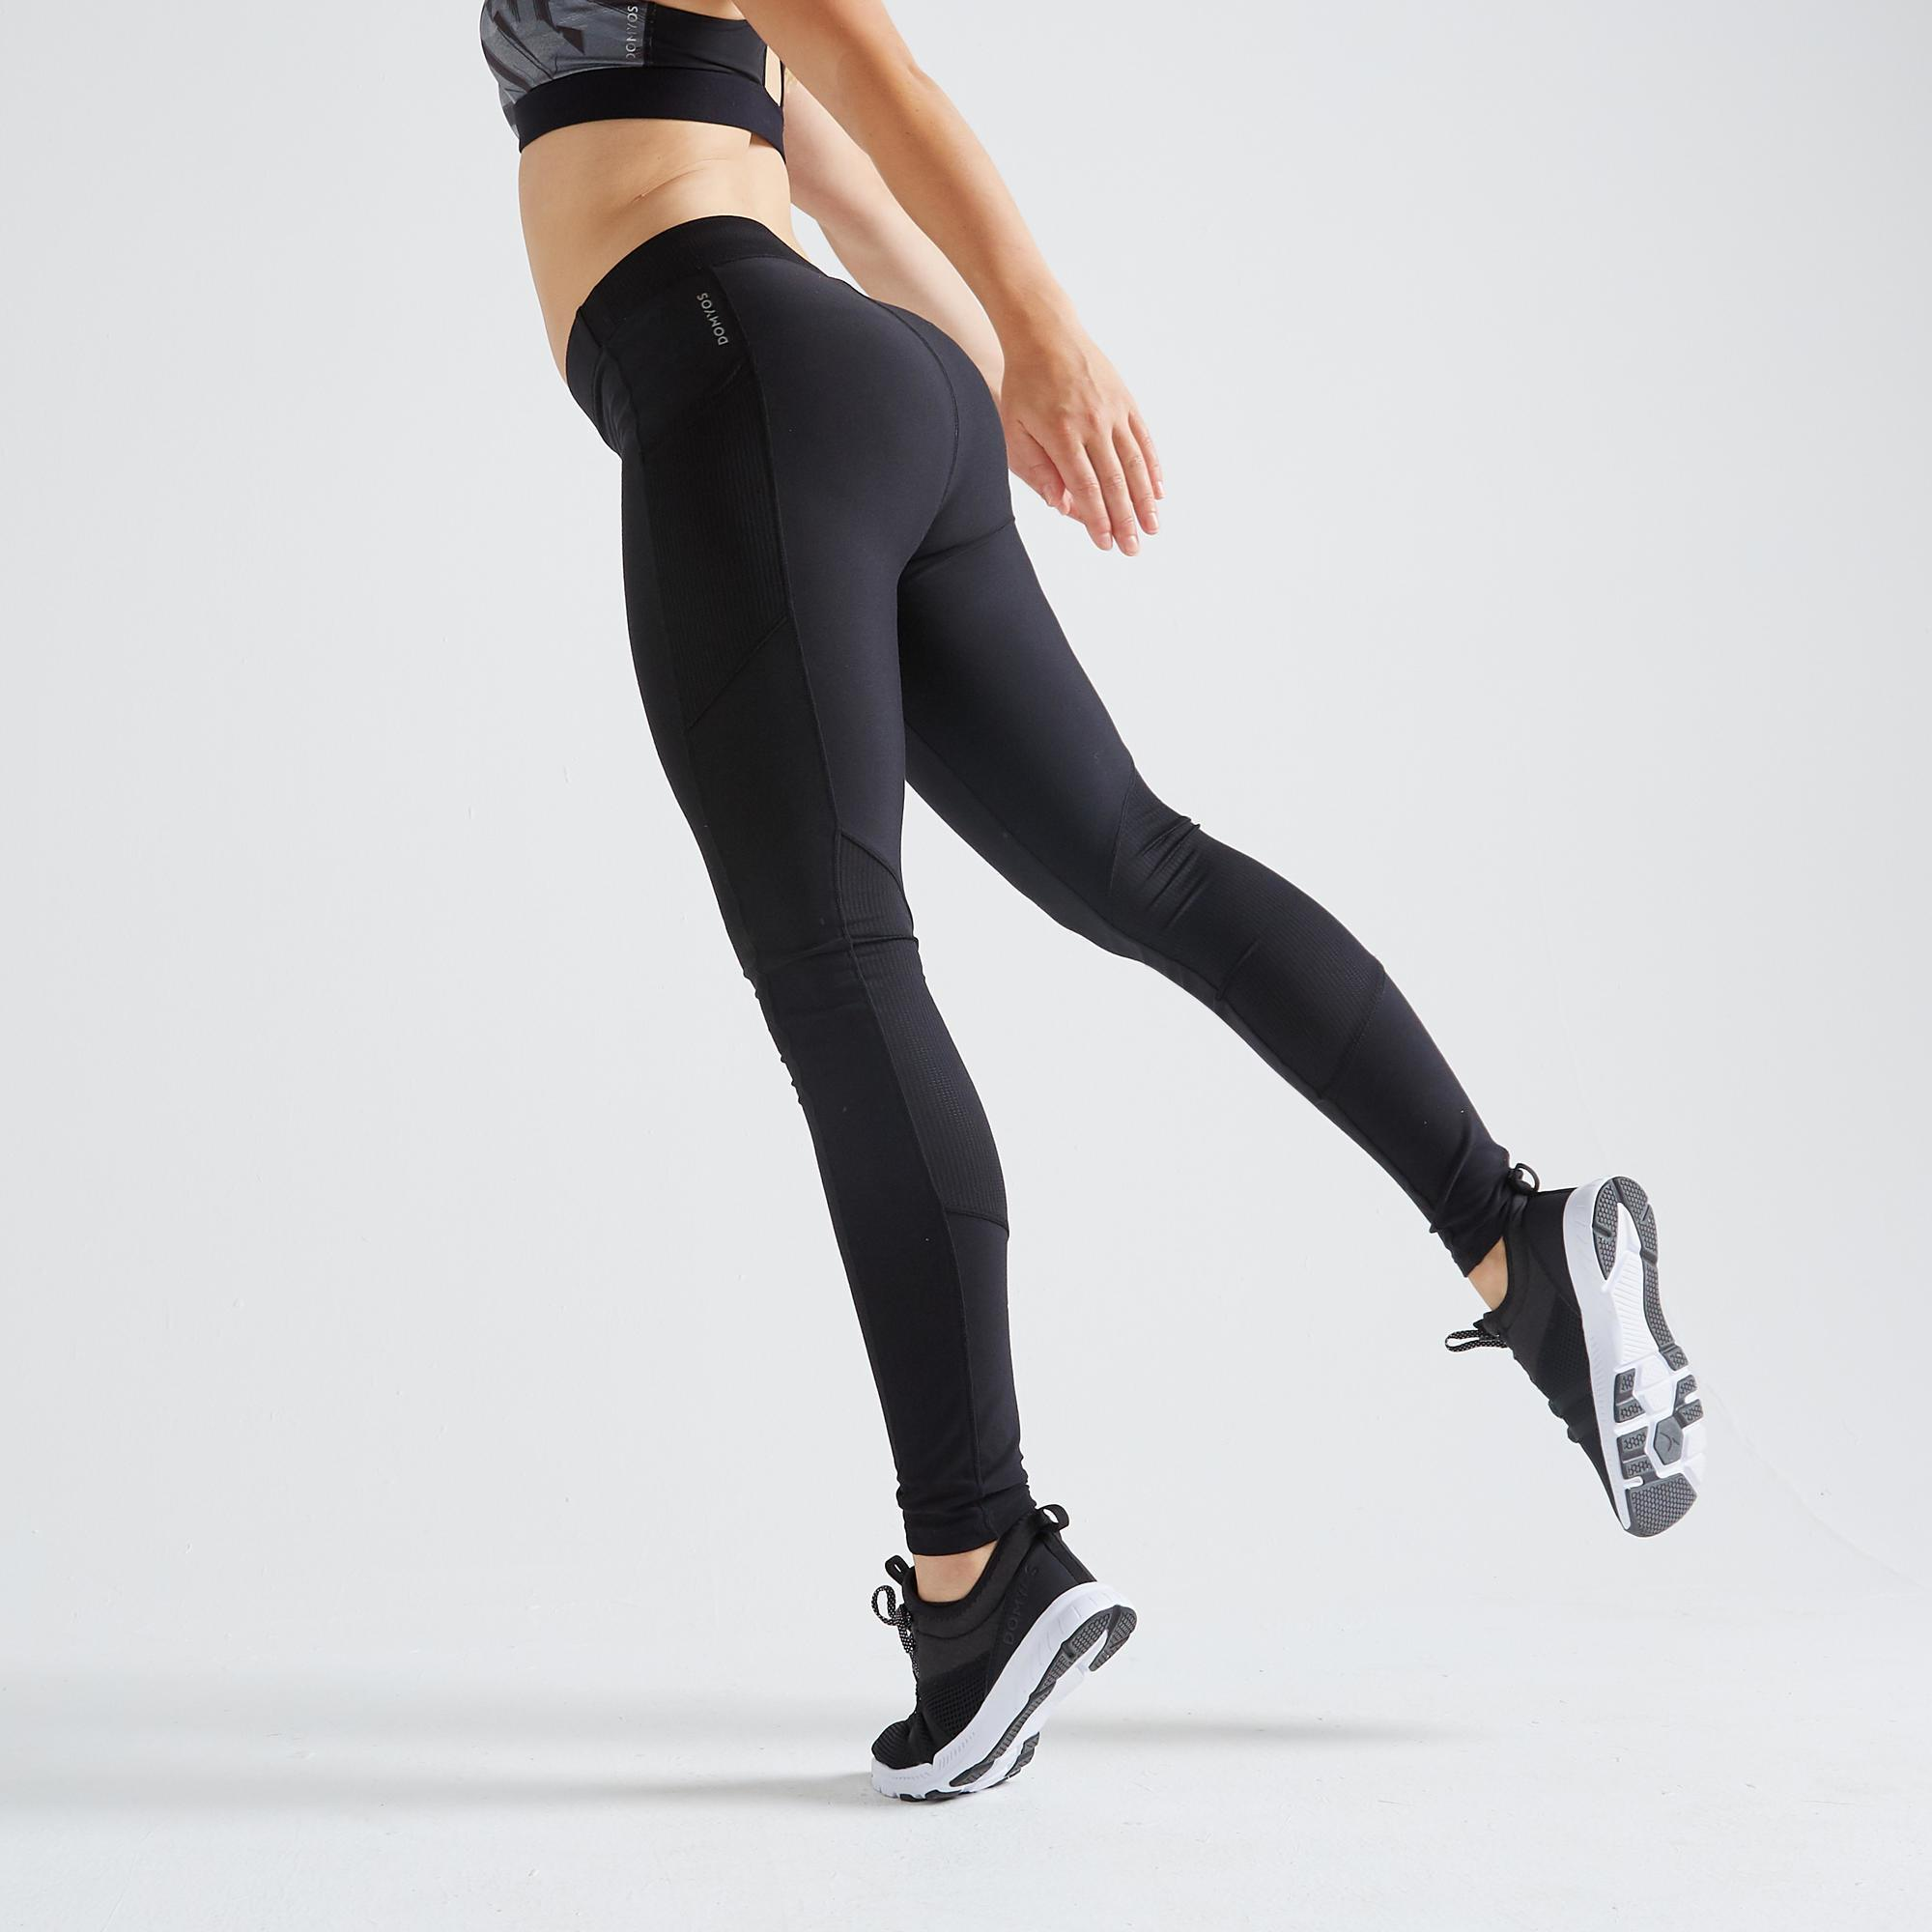 Legging Fitness Cardio Training Femme Noir 120 Domyos By Decathlon